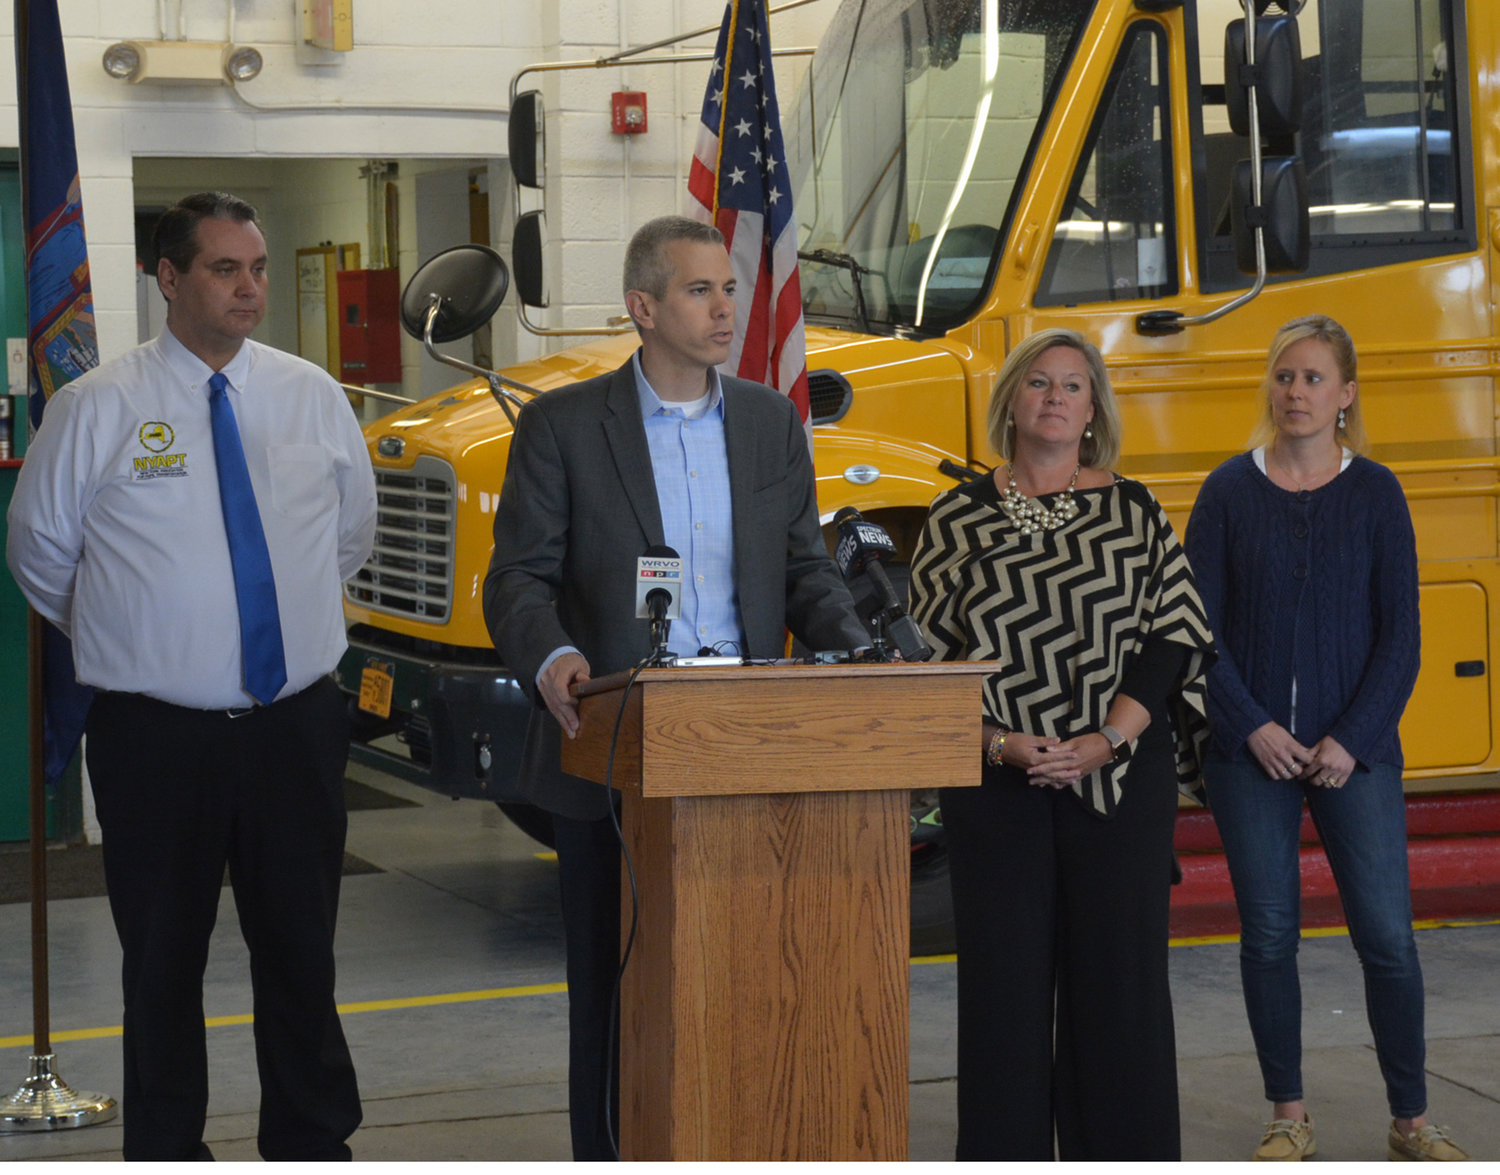 NEW LEGISLATION ANNOUNCED— U.S. Rep. Anthony Brindisi addresses Westmoreland school bus drivers about the new bill he is co-sponsoring designed to help strengthen safety concerns for school bus boarding and exciting. He explained the bill has bipartisan support and is hopeful for it's passing within the year.